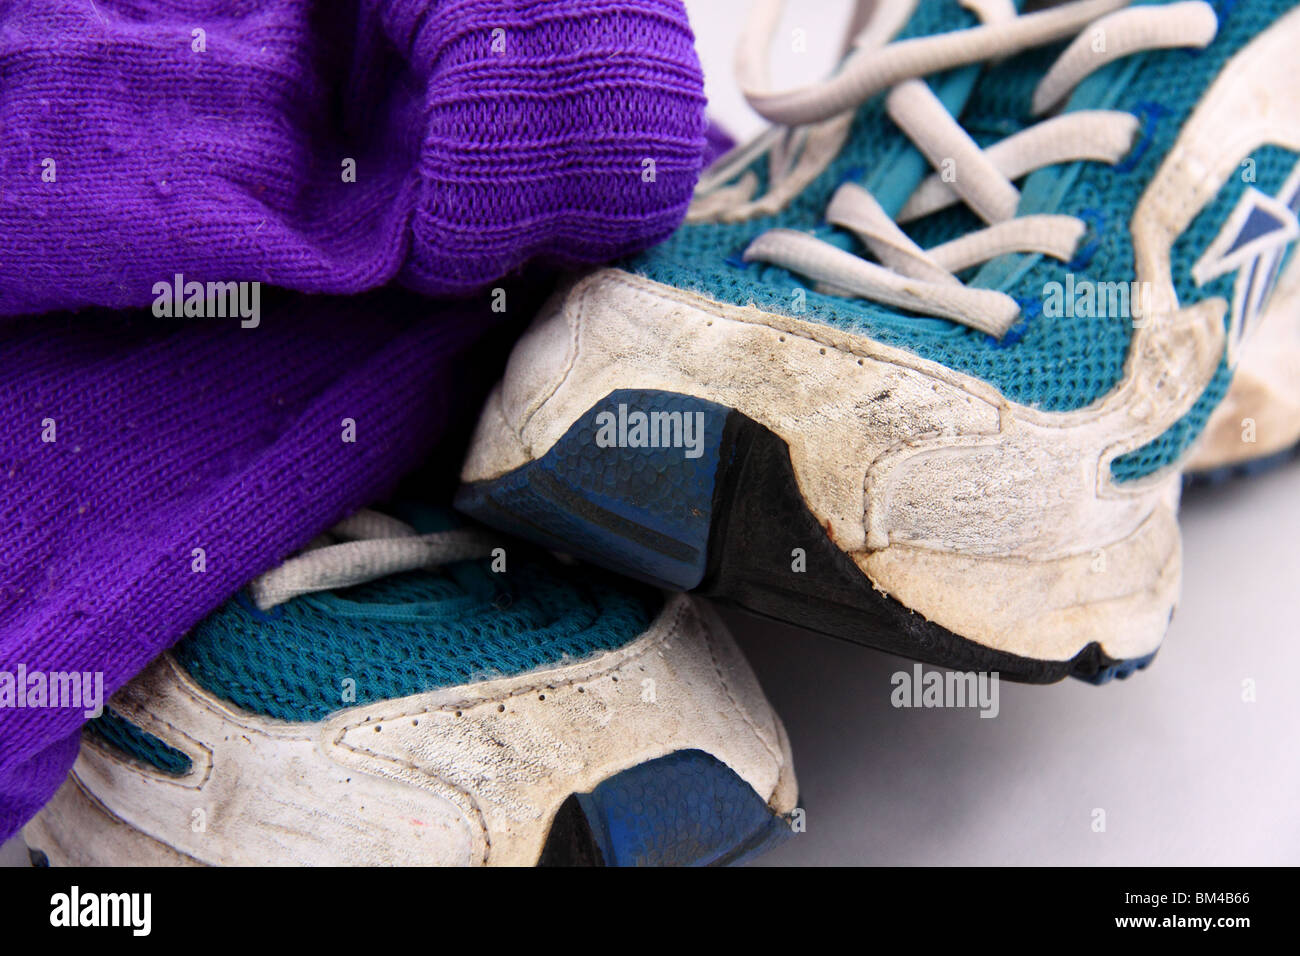 trainers and socks - Stock Image